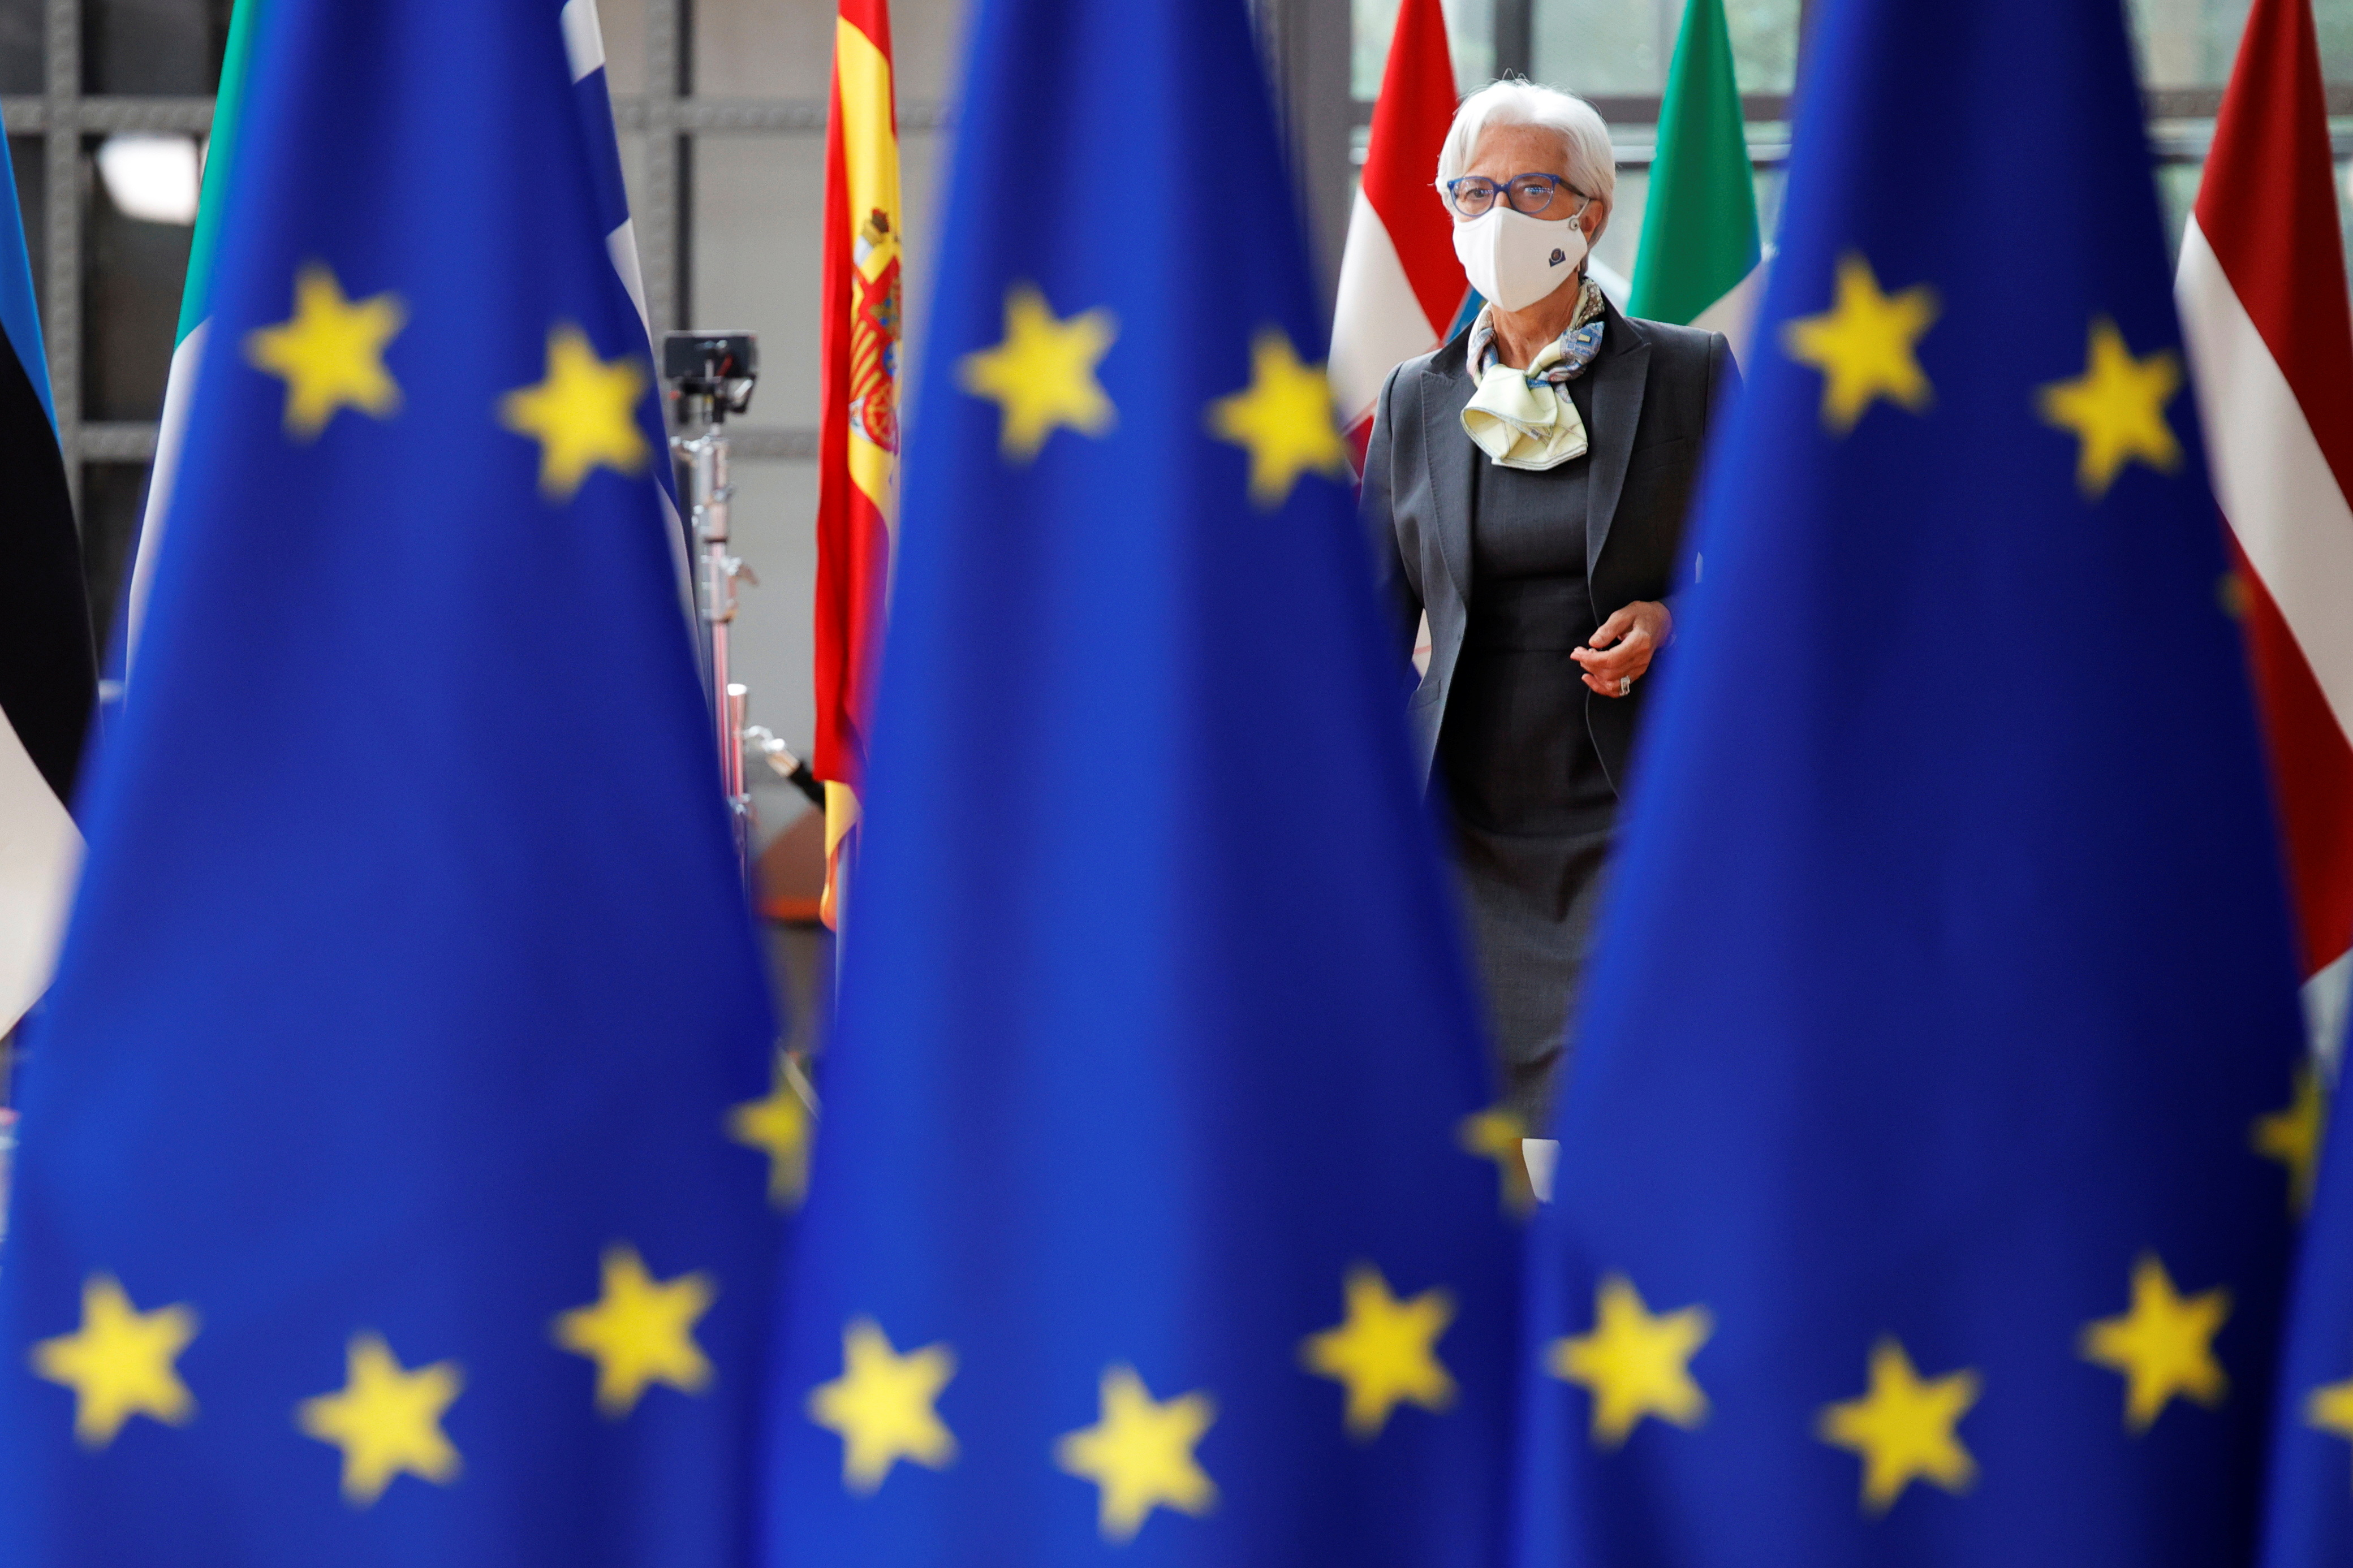 European Central Bank President Christine Lagarde arrives for the second day of a EU summit at the European Council building in Brussels, Belgium June 25, 2021.